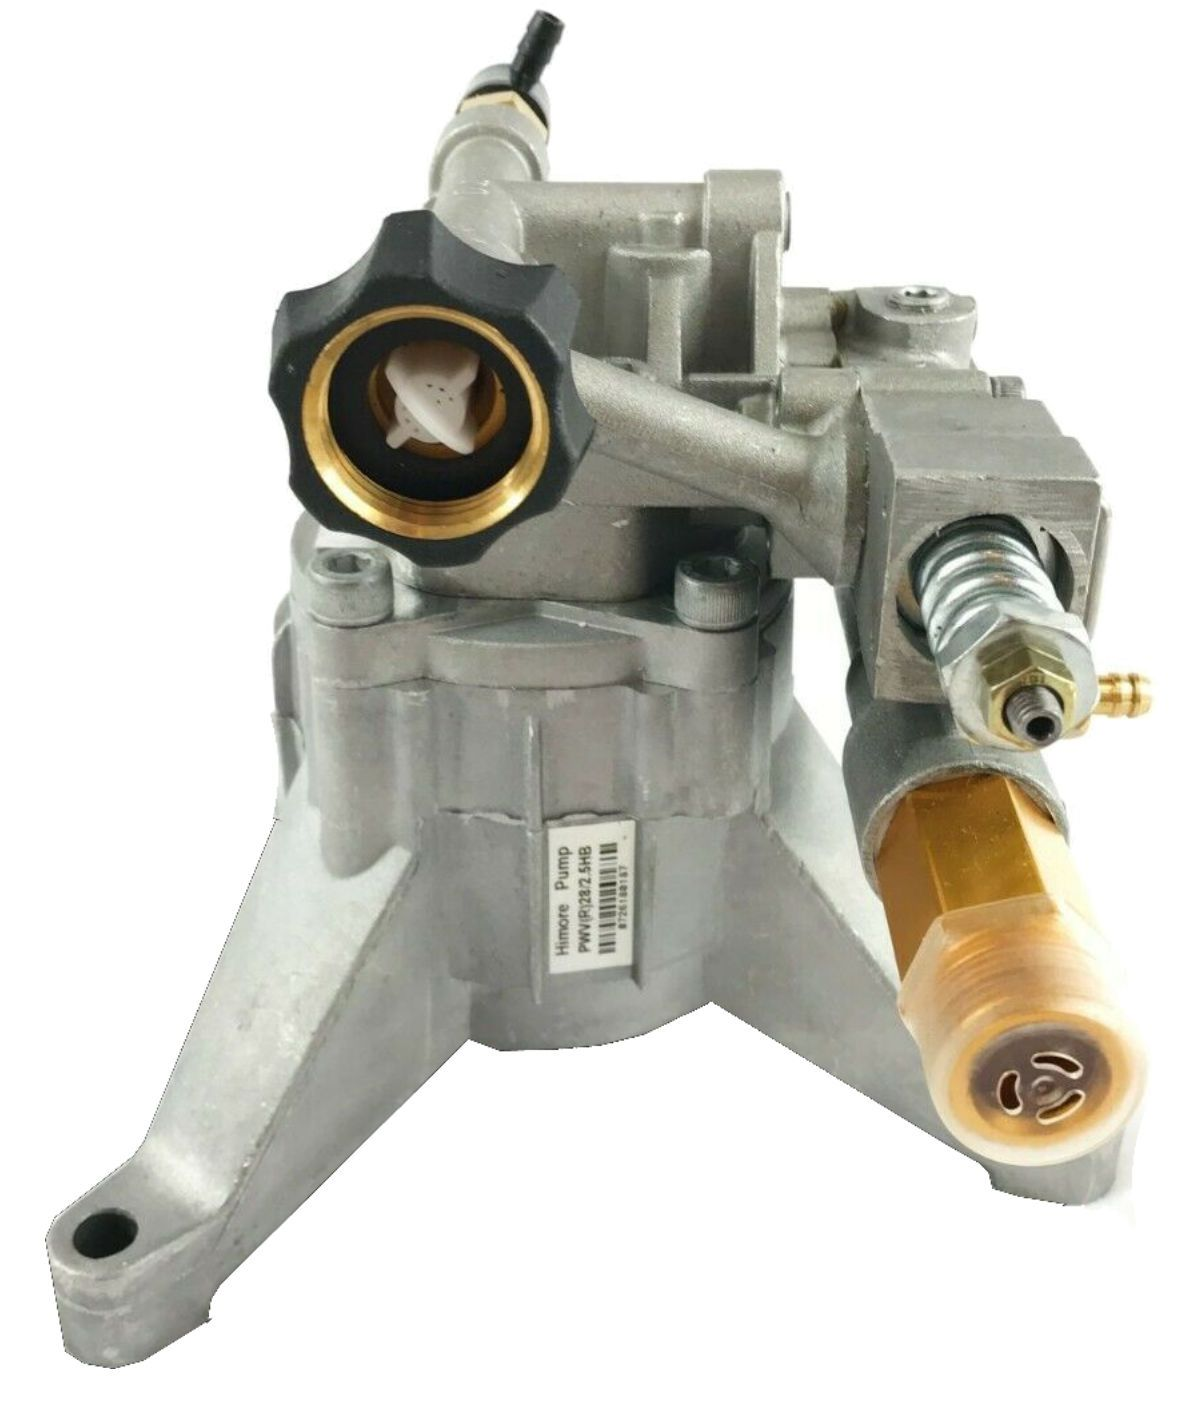 2700 PSI PRESSURE WASHER WATER PUMP fits Sears Craftsman 580.768322 1432-2 - AE-Power